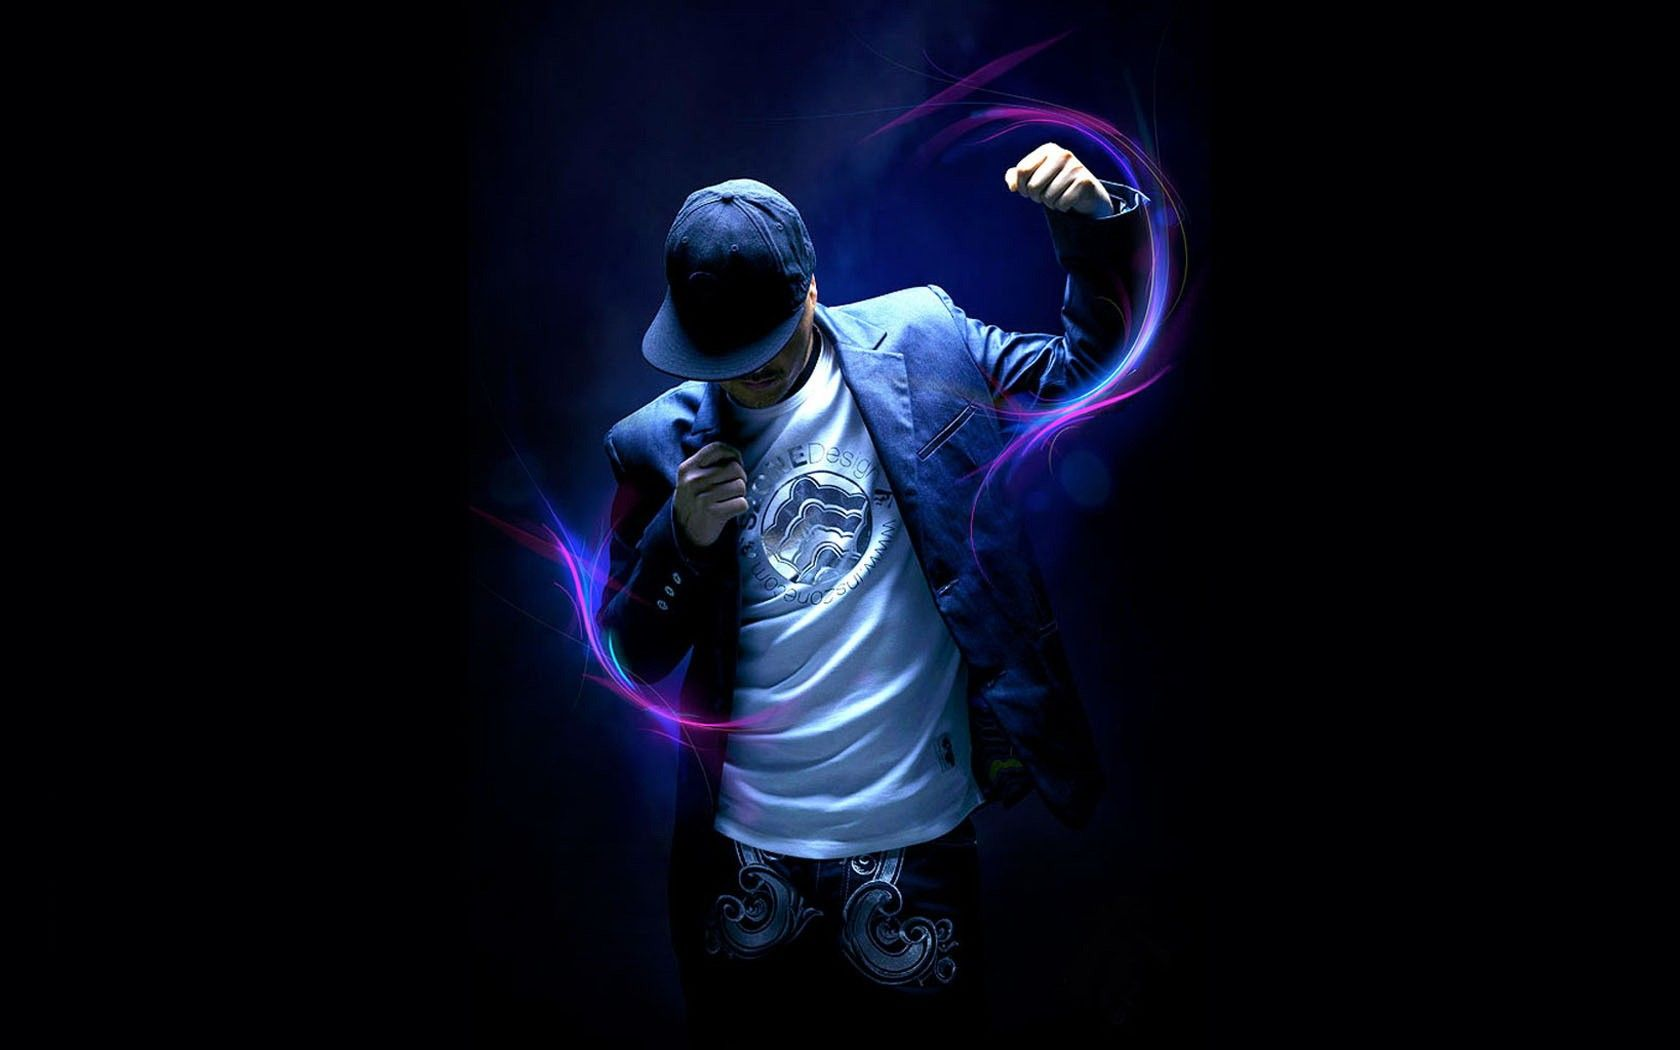 Cool guy Desktop wallpaper | Dance wallpaper, Boys wallpaper, Profile  picture images